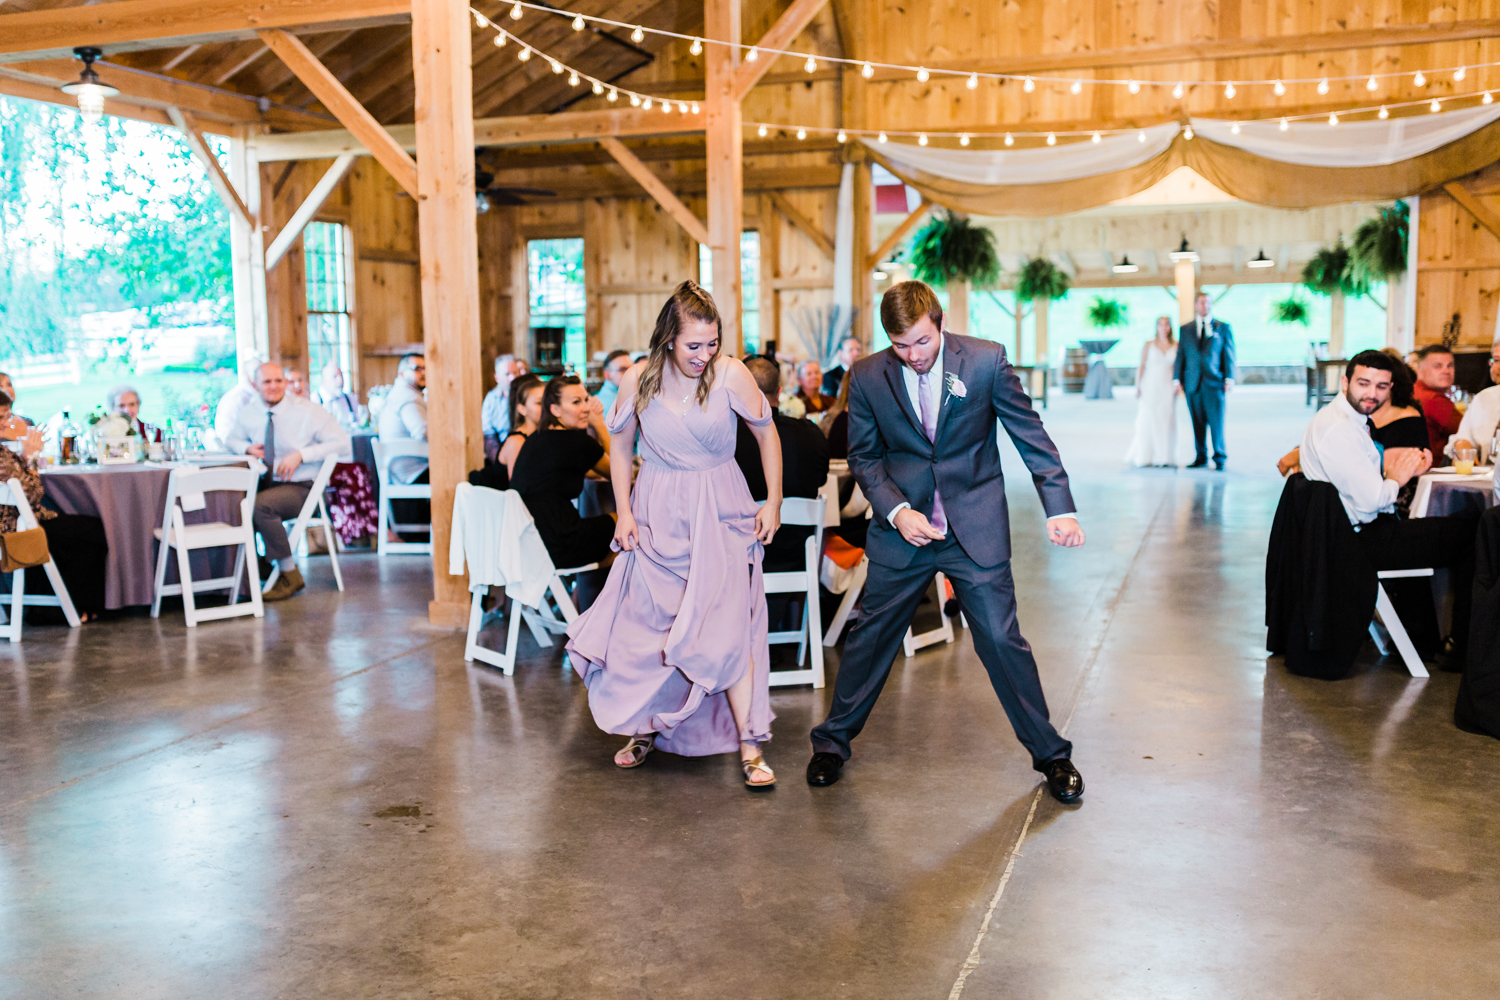 Bridal party sibling get introduced to reception - Top rated MD photographer